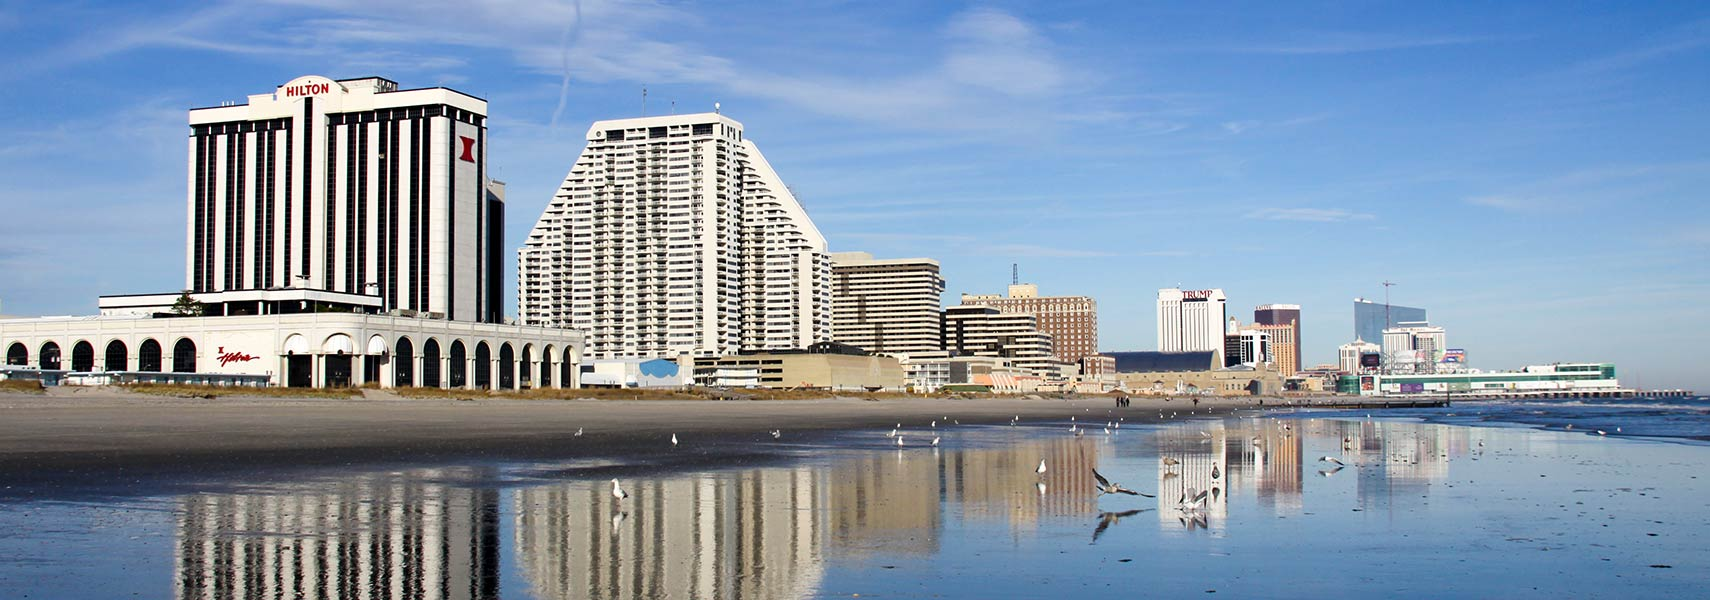 Casinos reflected on the sand in Atlantic City, NJ